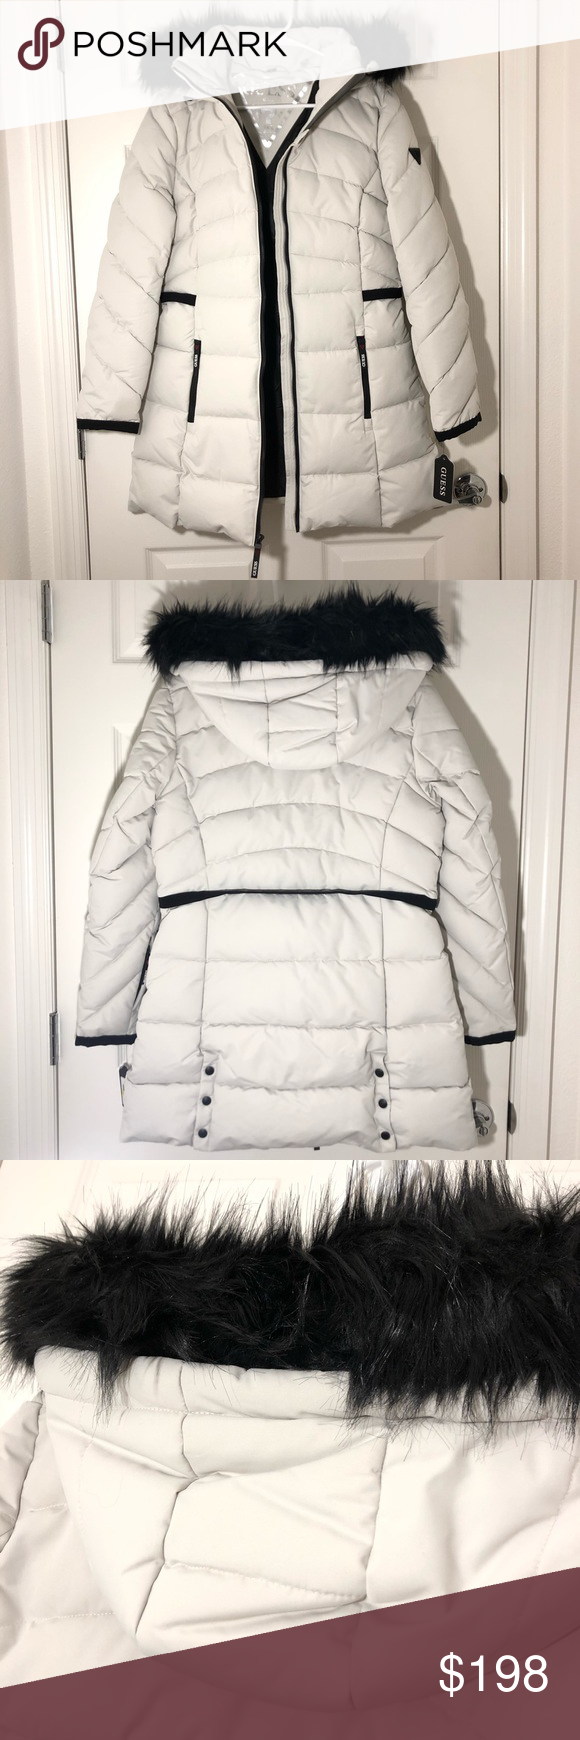 Limited Edition Guess Long Puffer Coat Jacket Limited Edition White And Black Guess Long Puffer Jacket With Fa Clothes Design Long Puffer Jacket Fashion Design [ 1740 x 580 Pixel ]